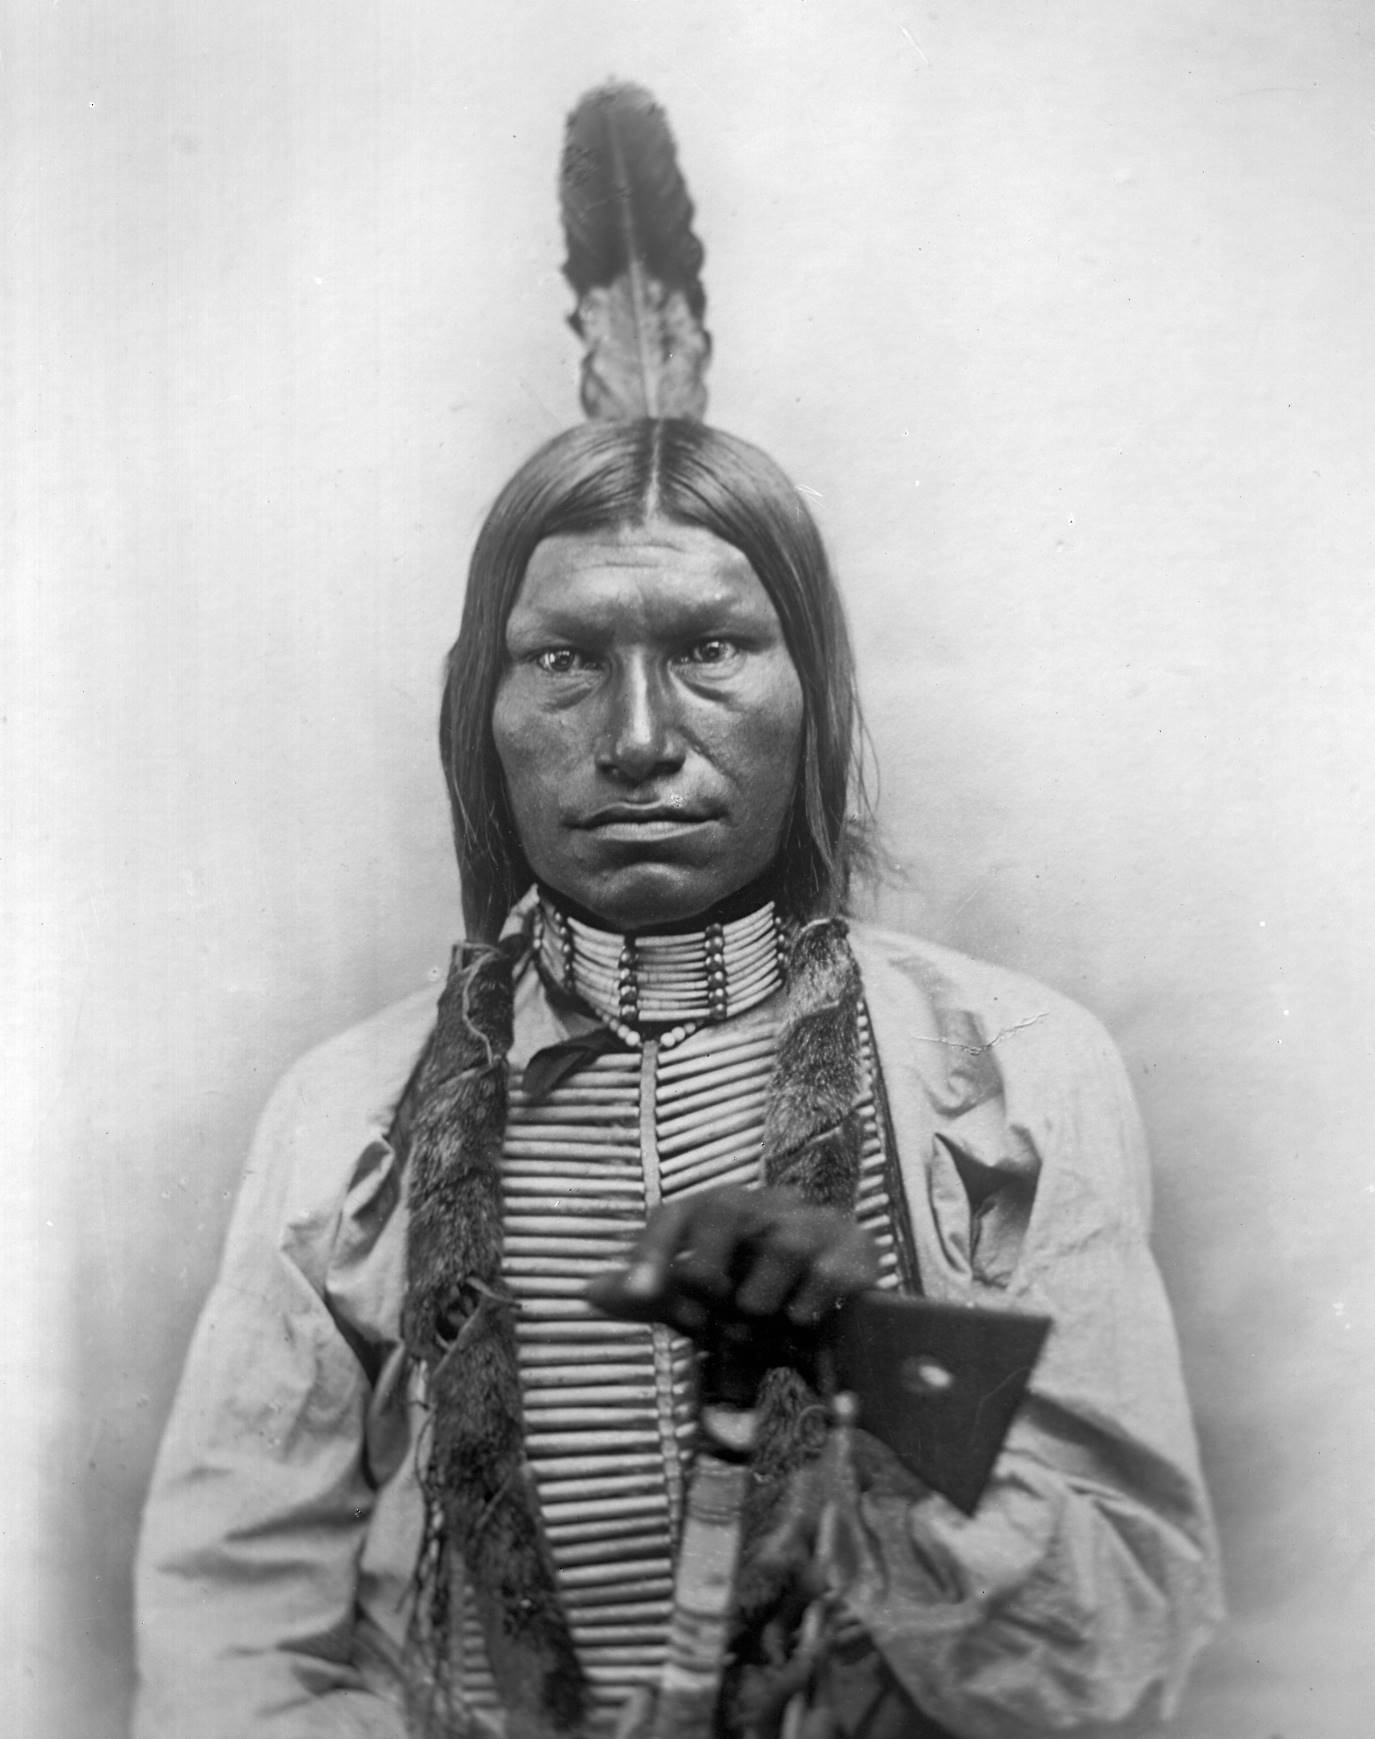 Low Dog, Oglala Lakota